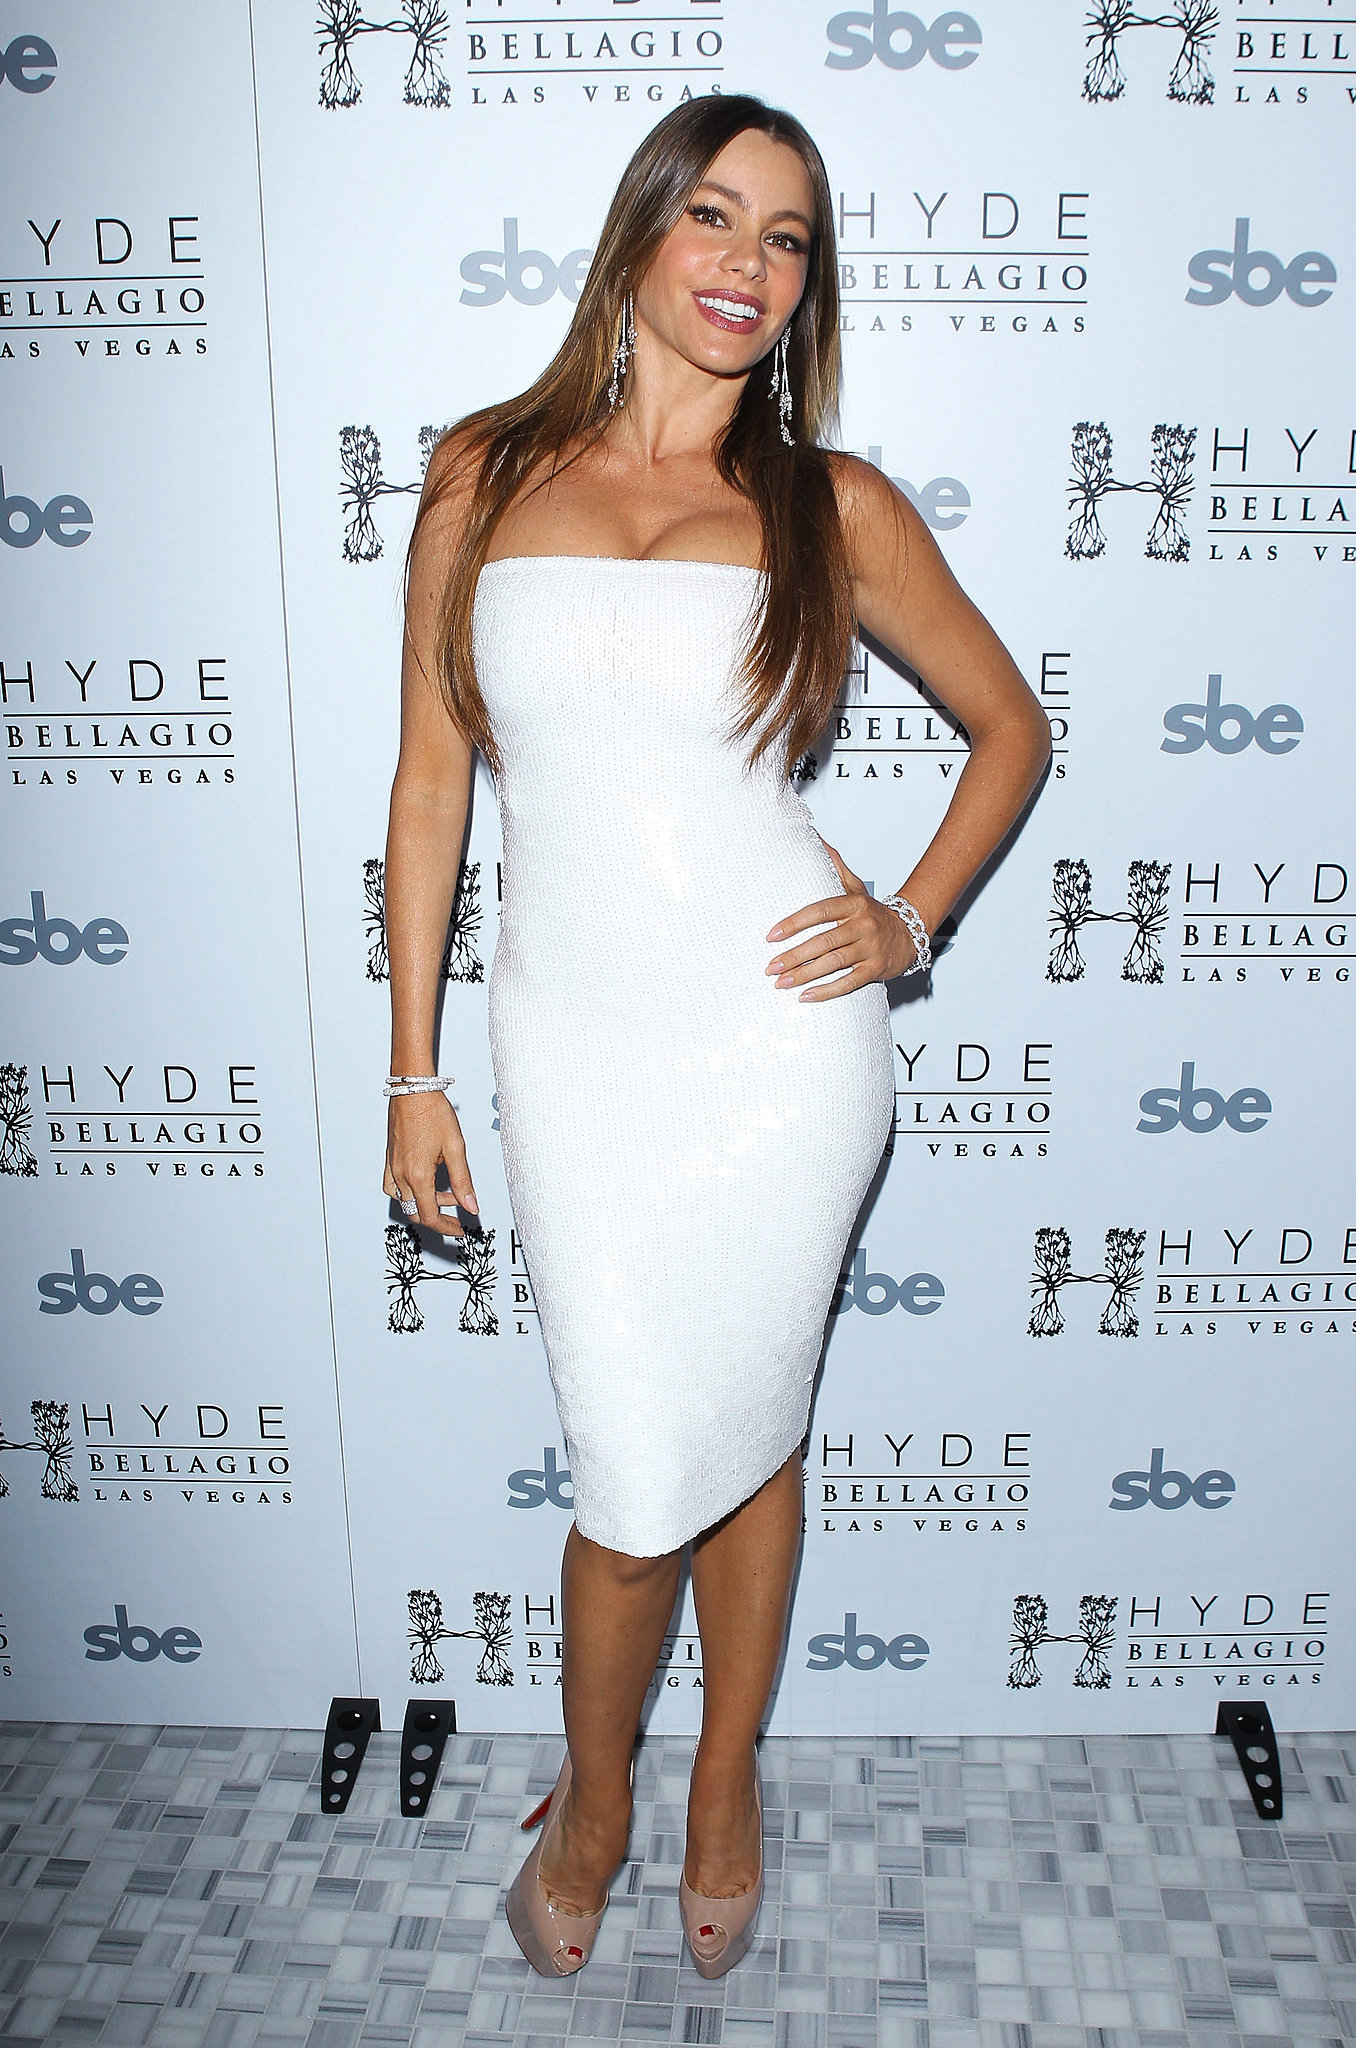 Sofia looked white-hot while ringing in the new year in a strapless sequined dress and nude peep-toes at Hyde Bellagio's nightclub in Las Vegas.